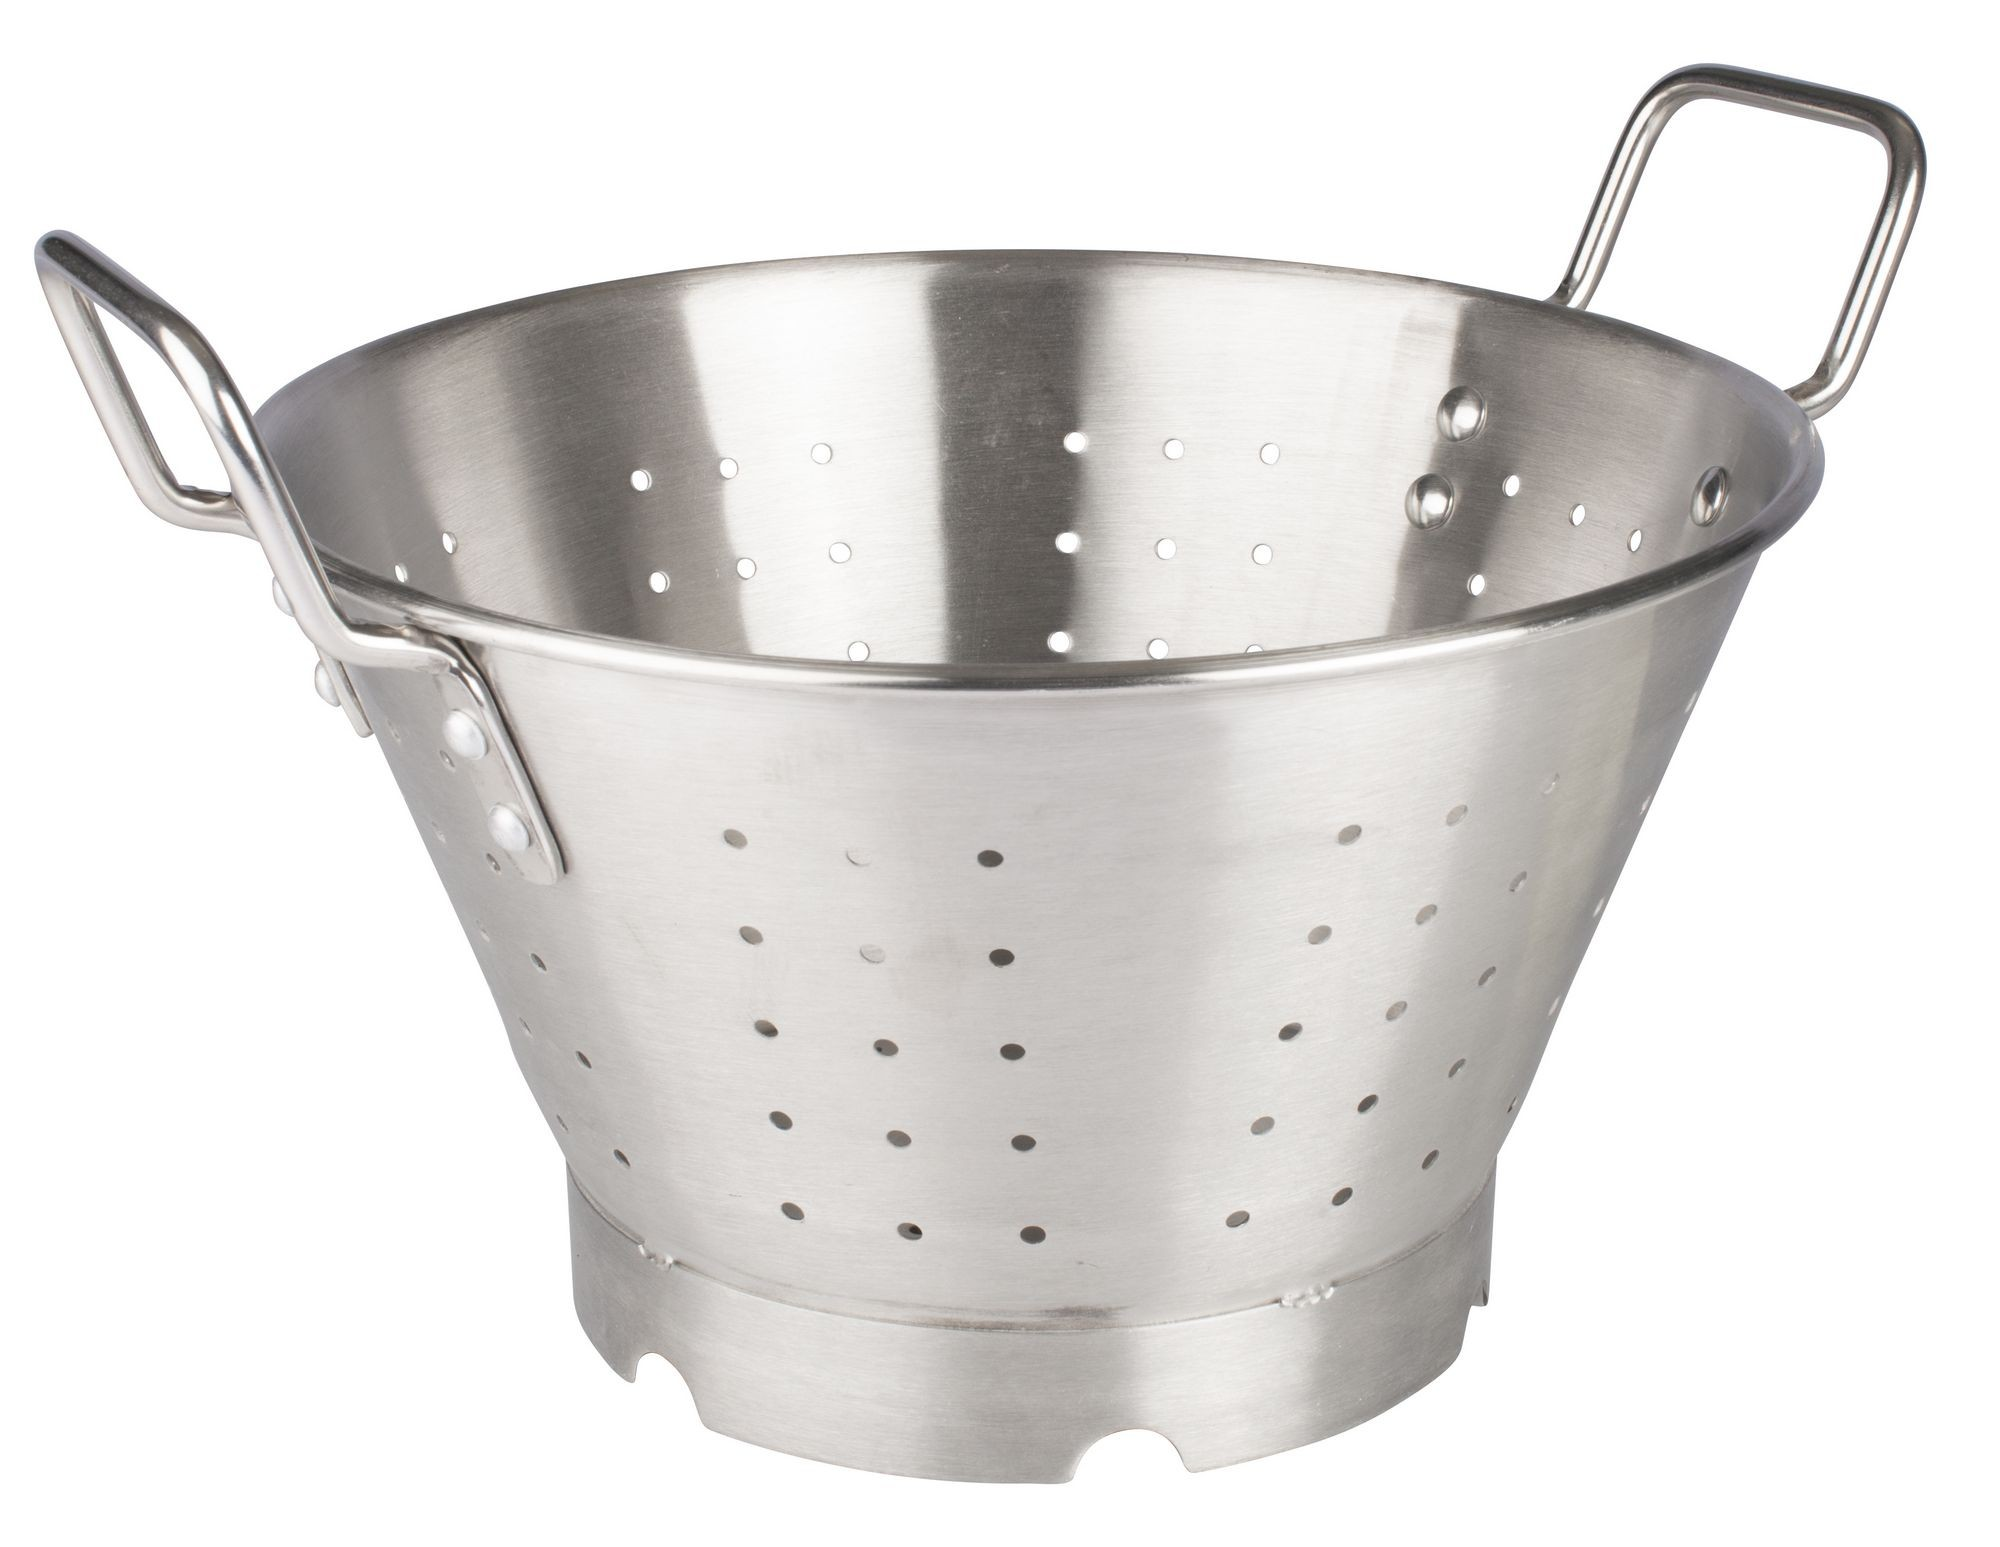 Winco SLO-11 Heavy Duty Stainless Steel Colander, 11 Qt.